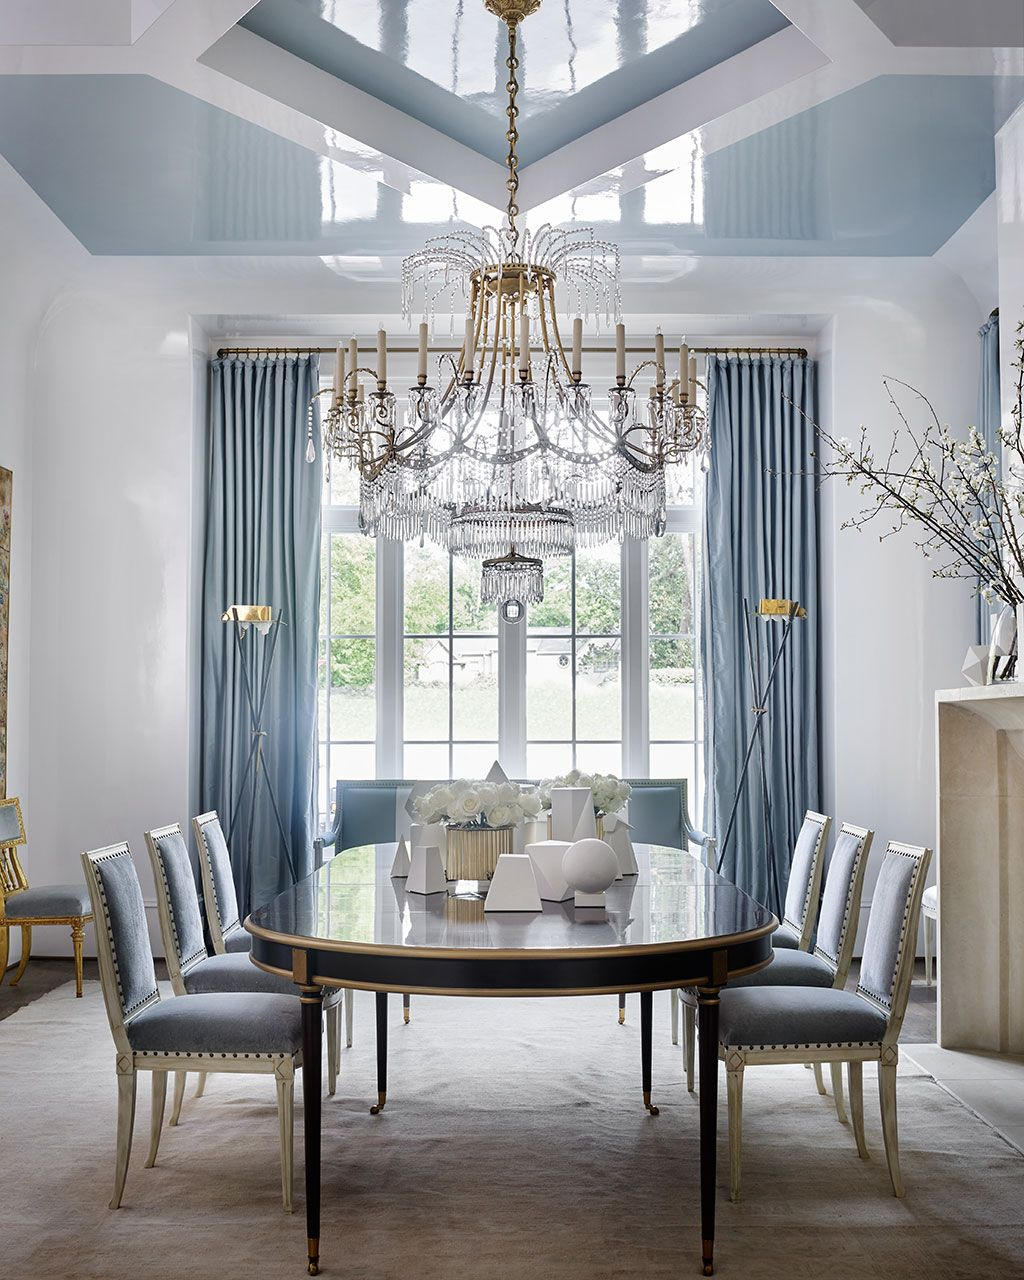 Suzanne Kasler loves a White Wall Color | Blue ceilings, Walls and ...